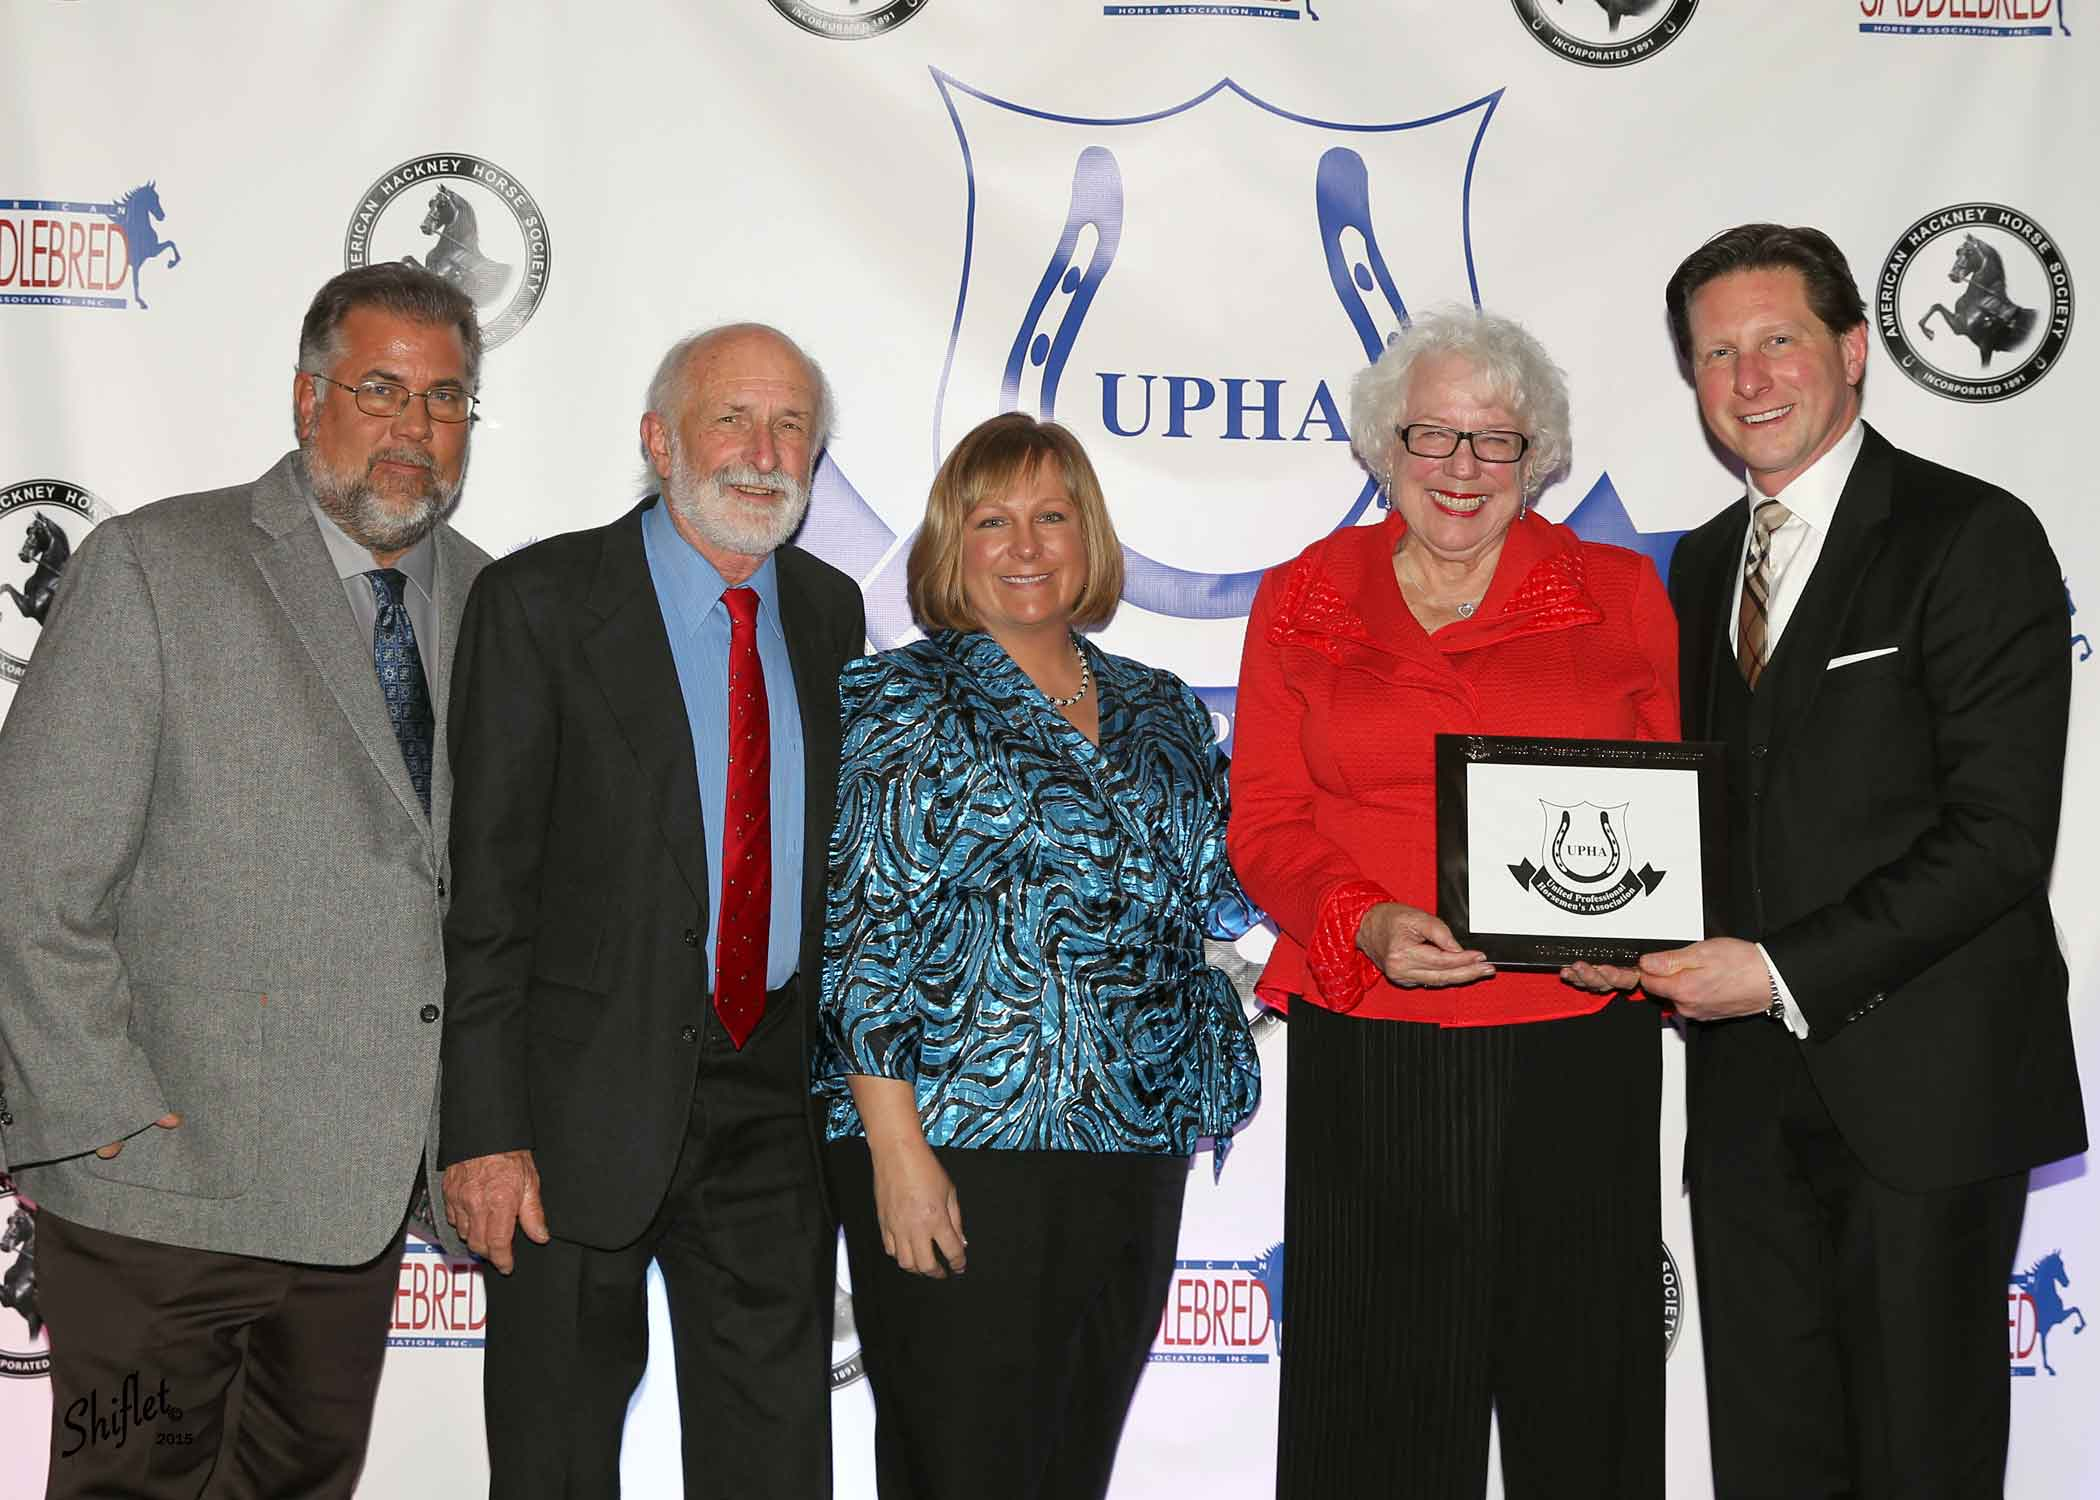 Sandra Surber, joined by her husband Ted and Rich and Maureen Campbell was the AHHS Ann Lee Spires Amateur Award recipient.